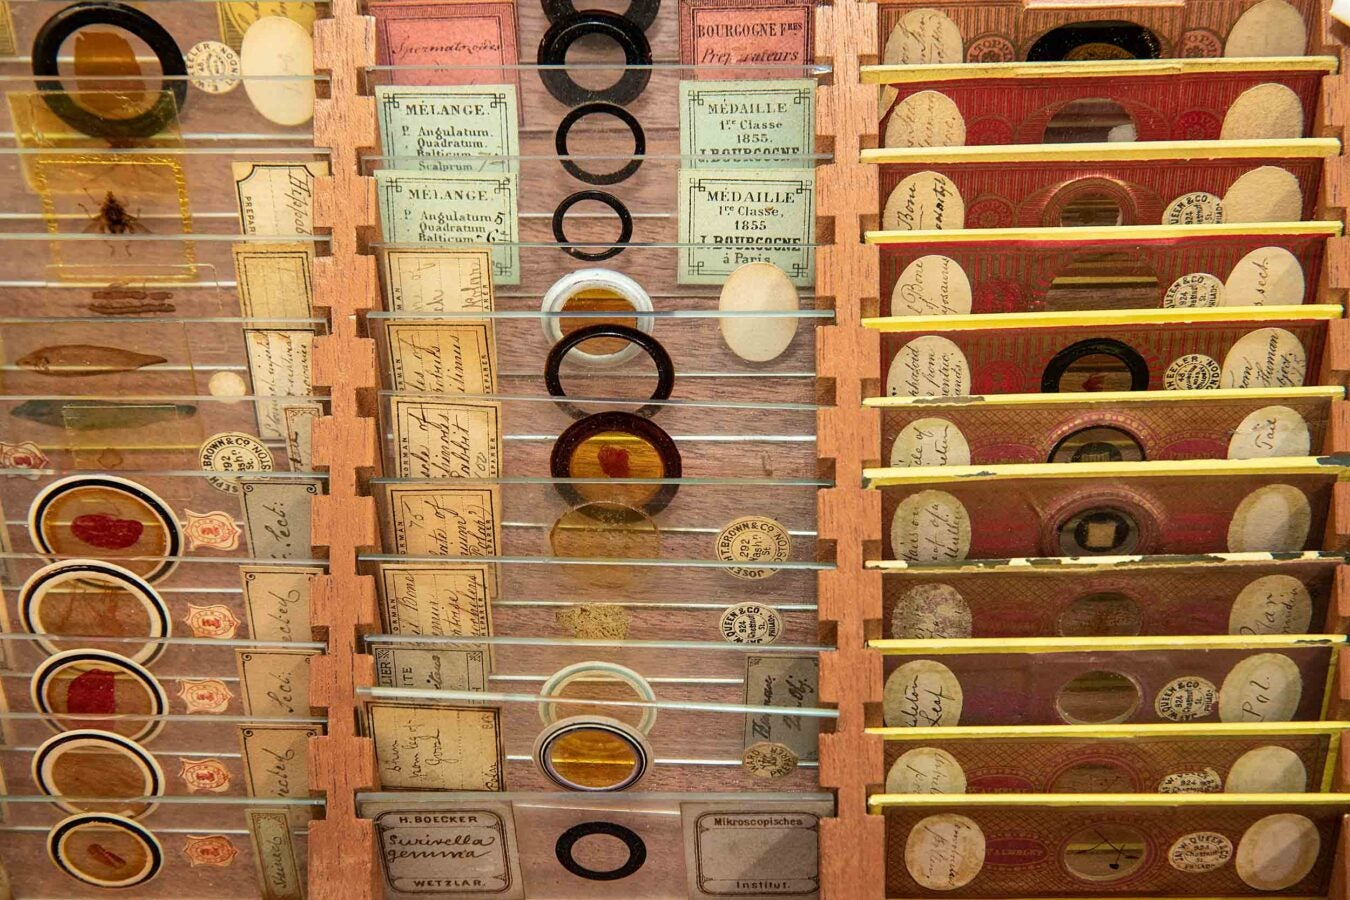 This drawerful of microscope slides contain animal tissue, plants, and insects with a binocular microscope made by H. & W. Crouch, London, 1862-1867.